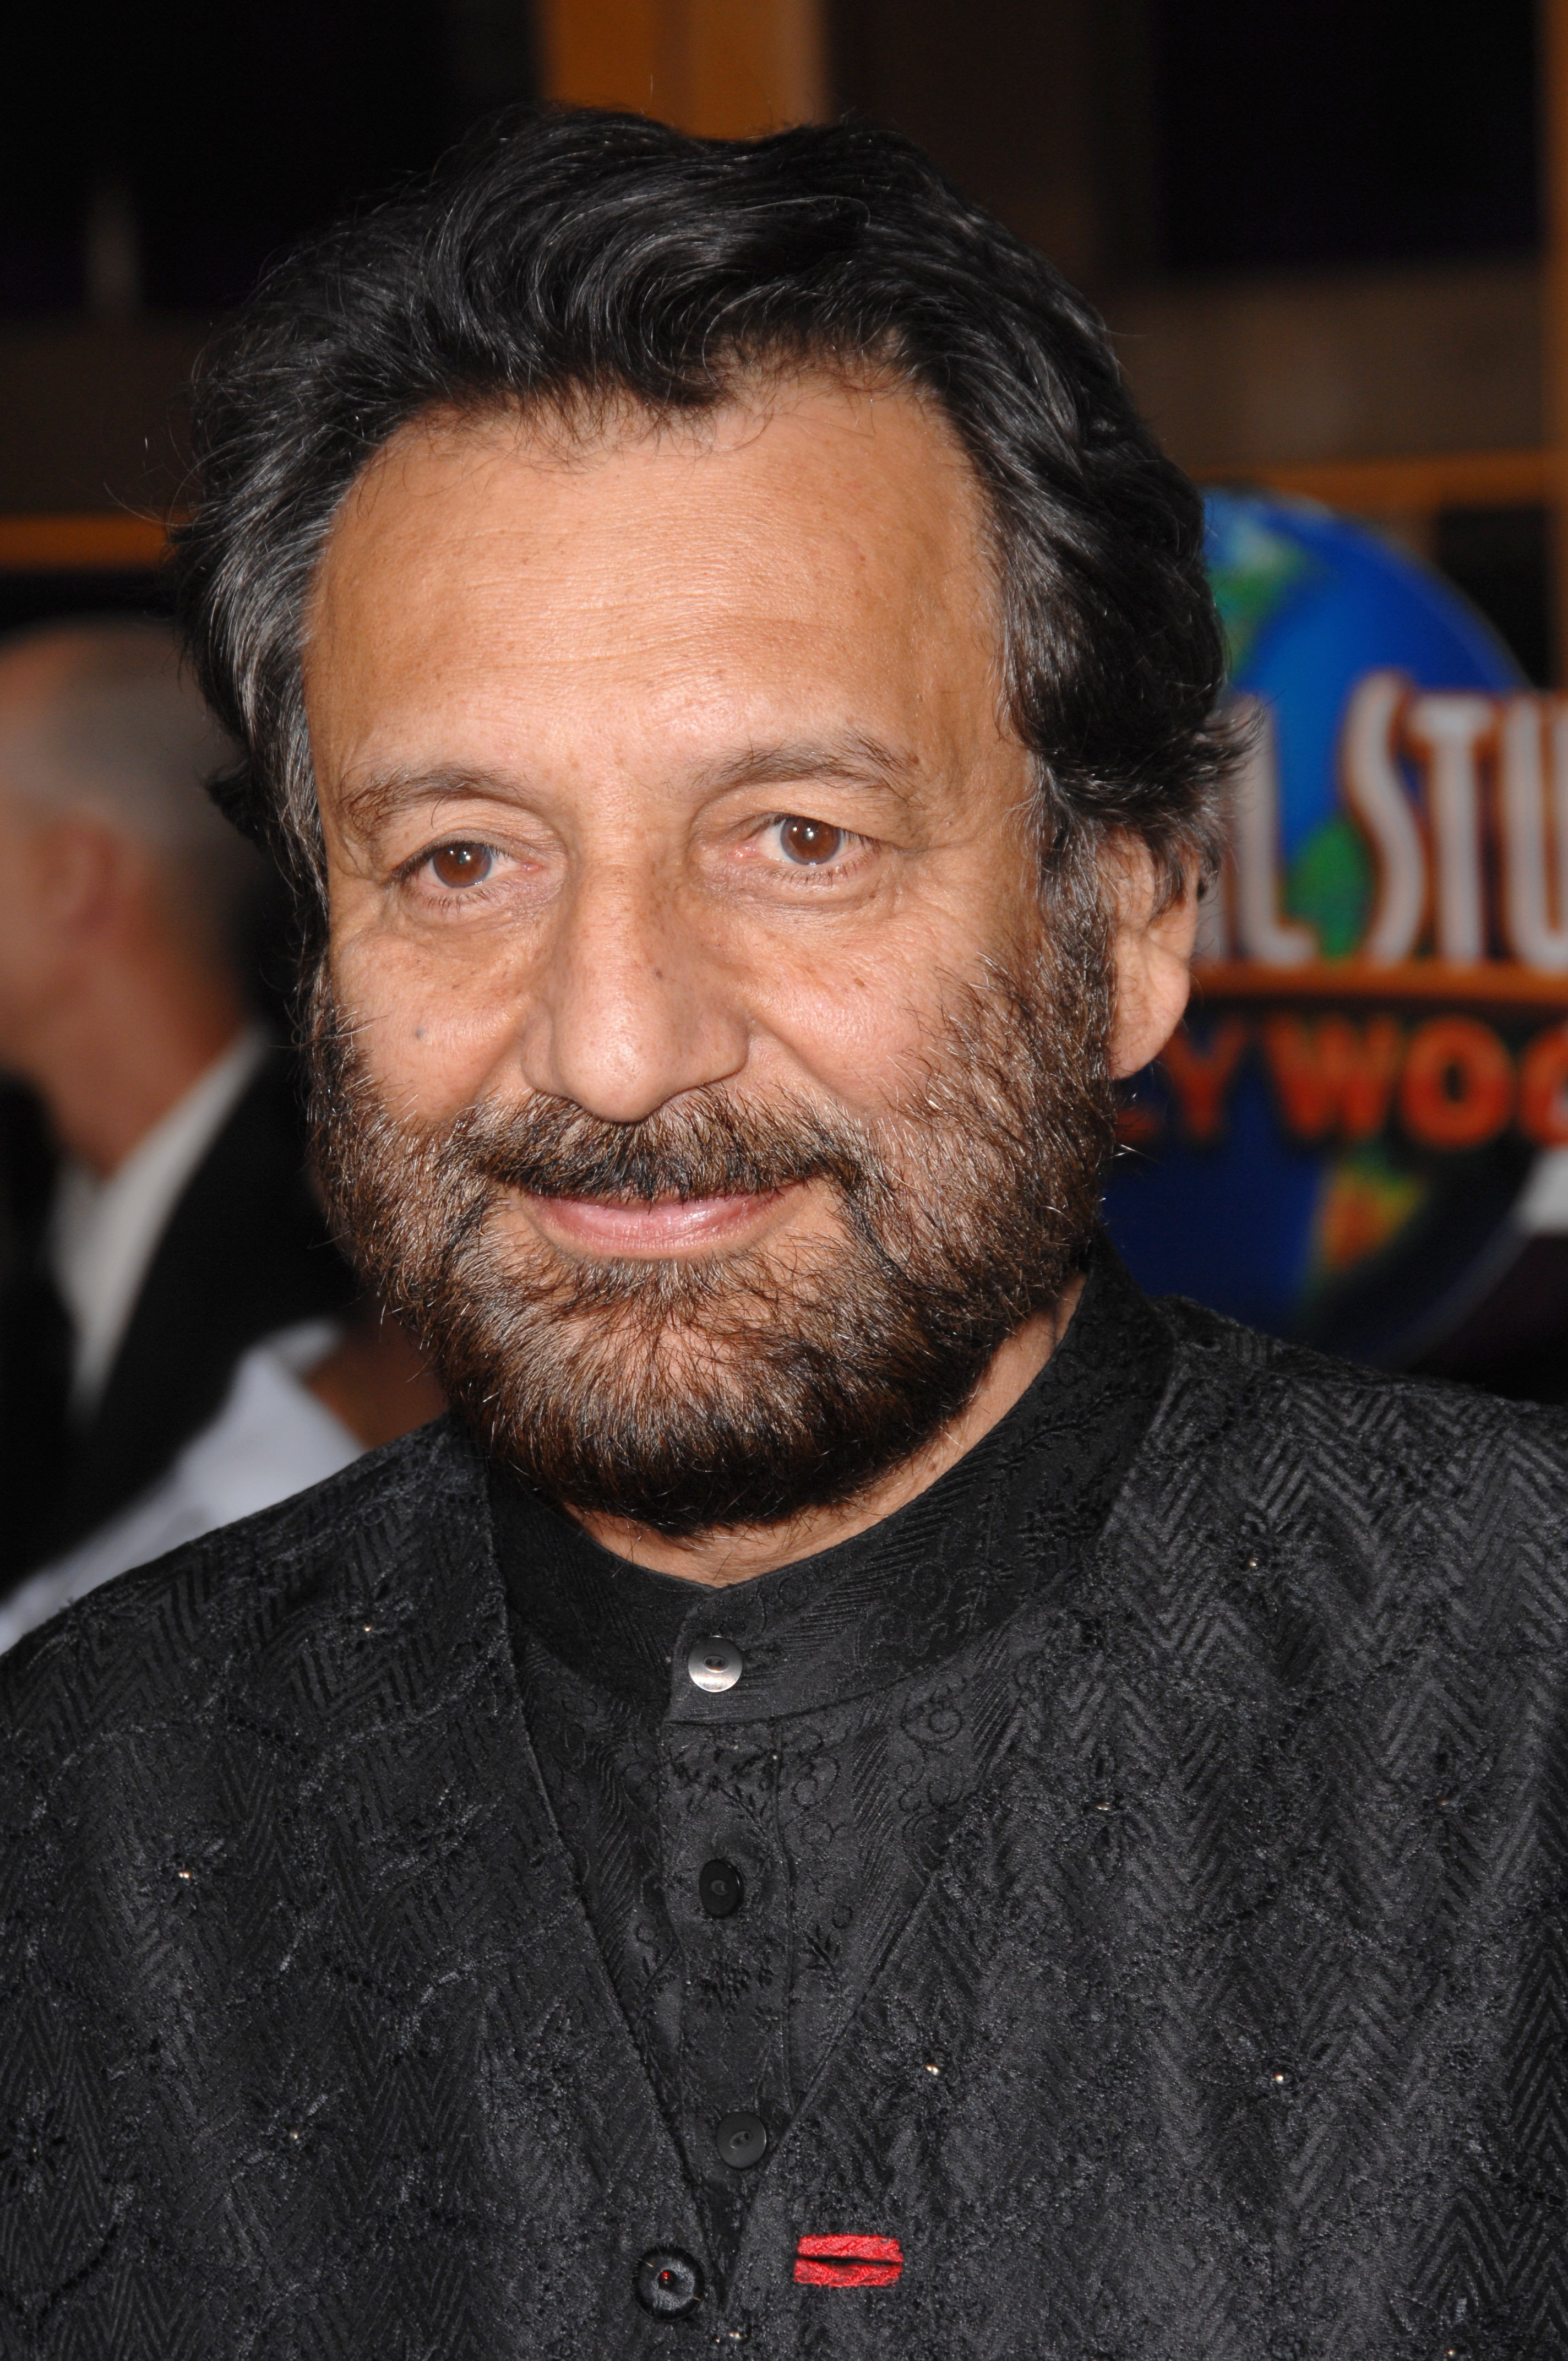 shekhar kapur movies listshekhar kapur paani, shekhar kapur twitter, shekhar kapur movies, shekhar kapur elizabeth, shekhar kapur net worth, shekhar kapur devi, shekhar kapur interview, shekhar kapur ted talk, shekhar kapur daughter, shekhar kapur imdb, shekhar kapur filmography, shekhar kapur directed movies, shekhar kapur instagram, shekhar kapur sadhguru, shekhar kapur biography, shekhar kapur age, shekhar kapur will, shekhar kapur quotes, shekhar kapur movies list, shekhar kapur masoom